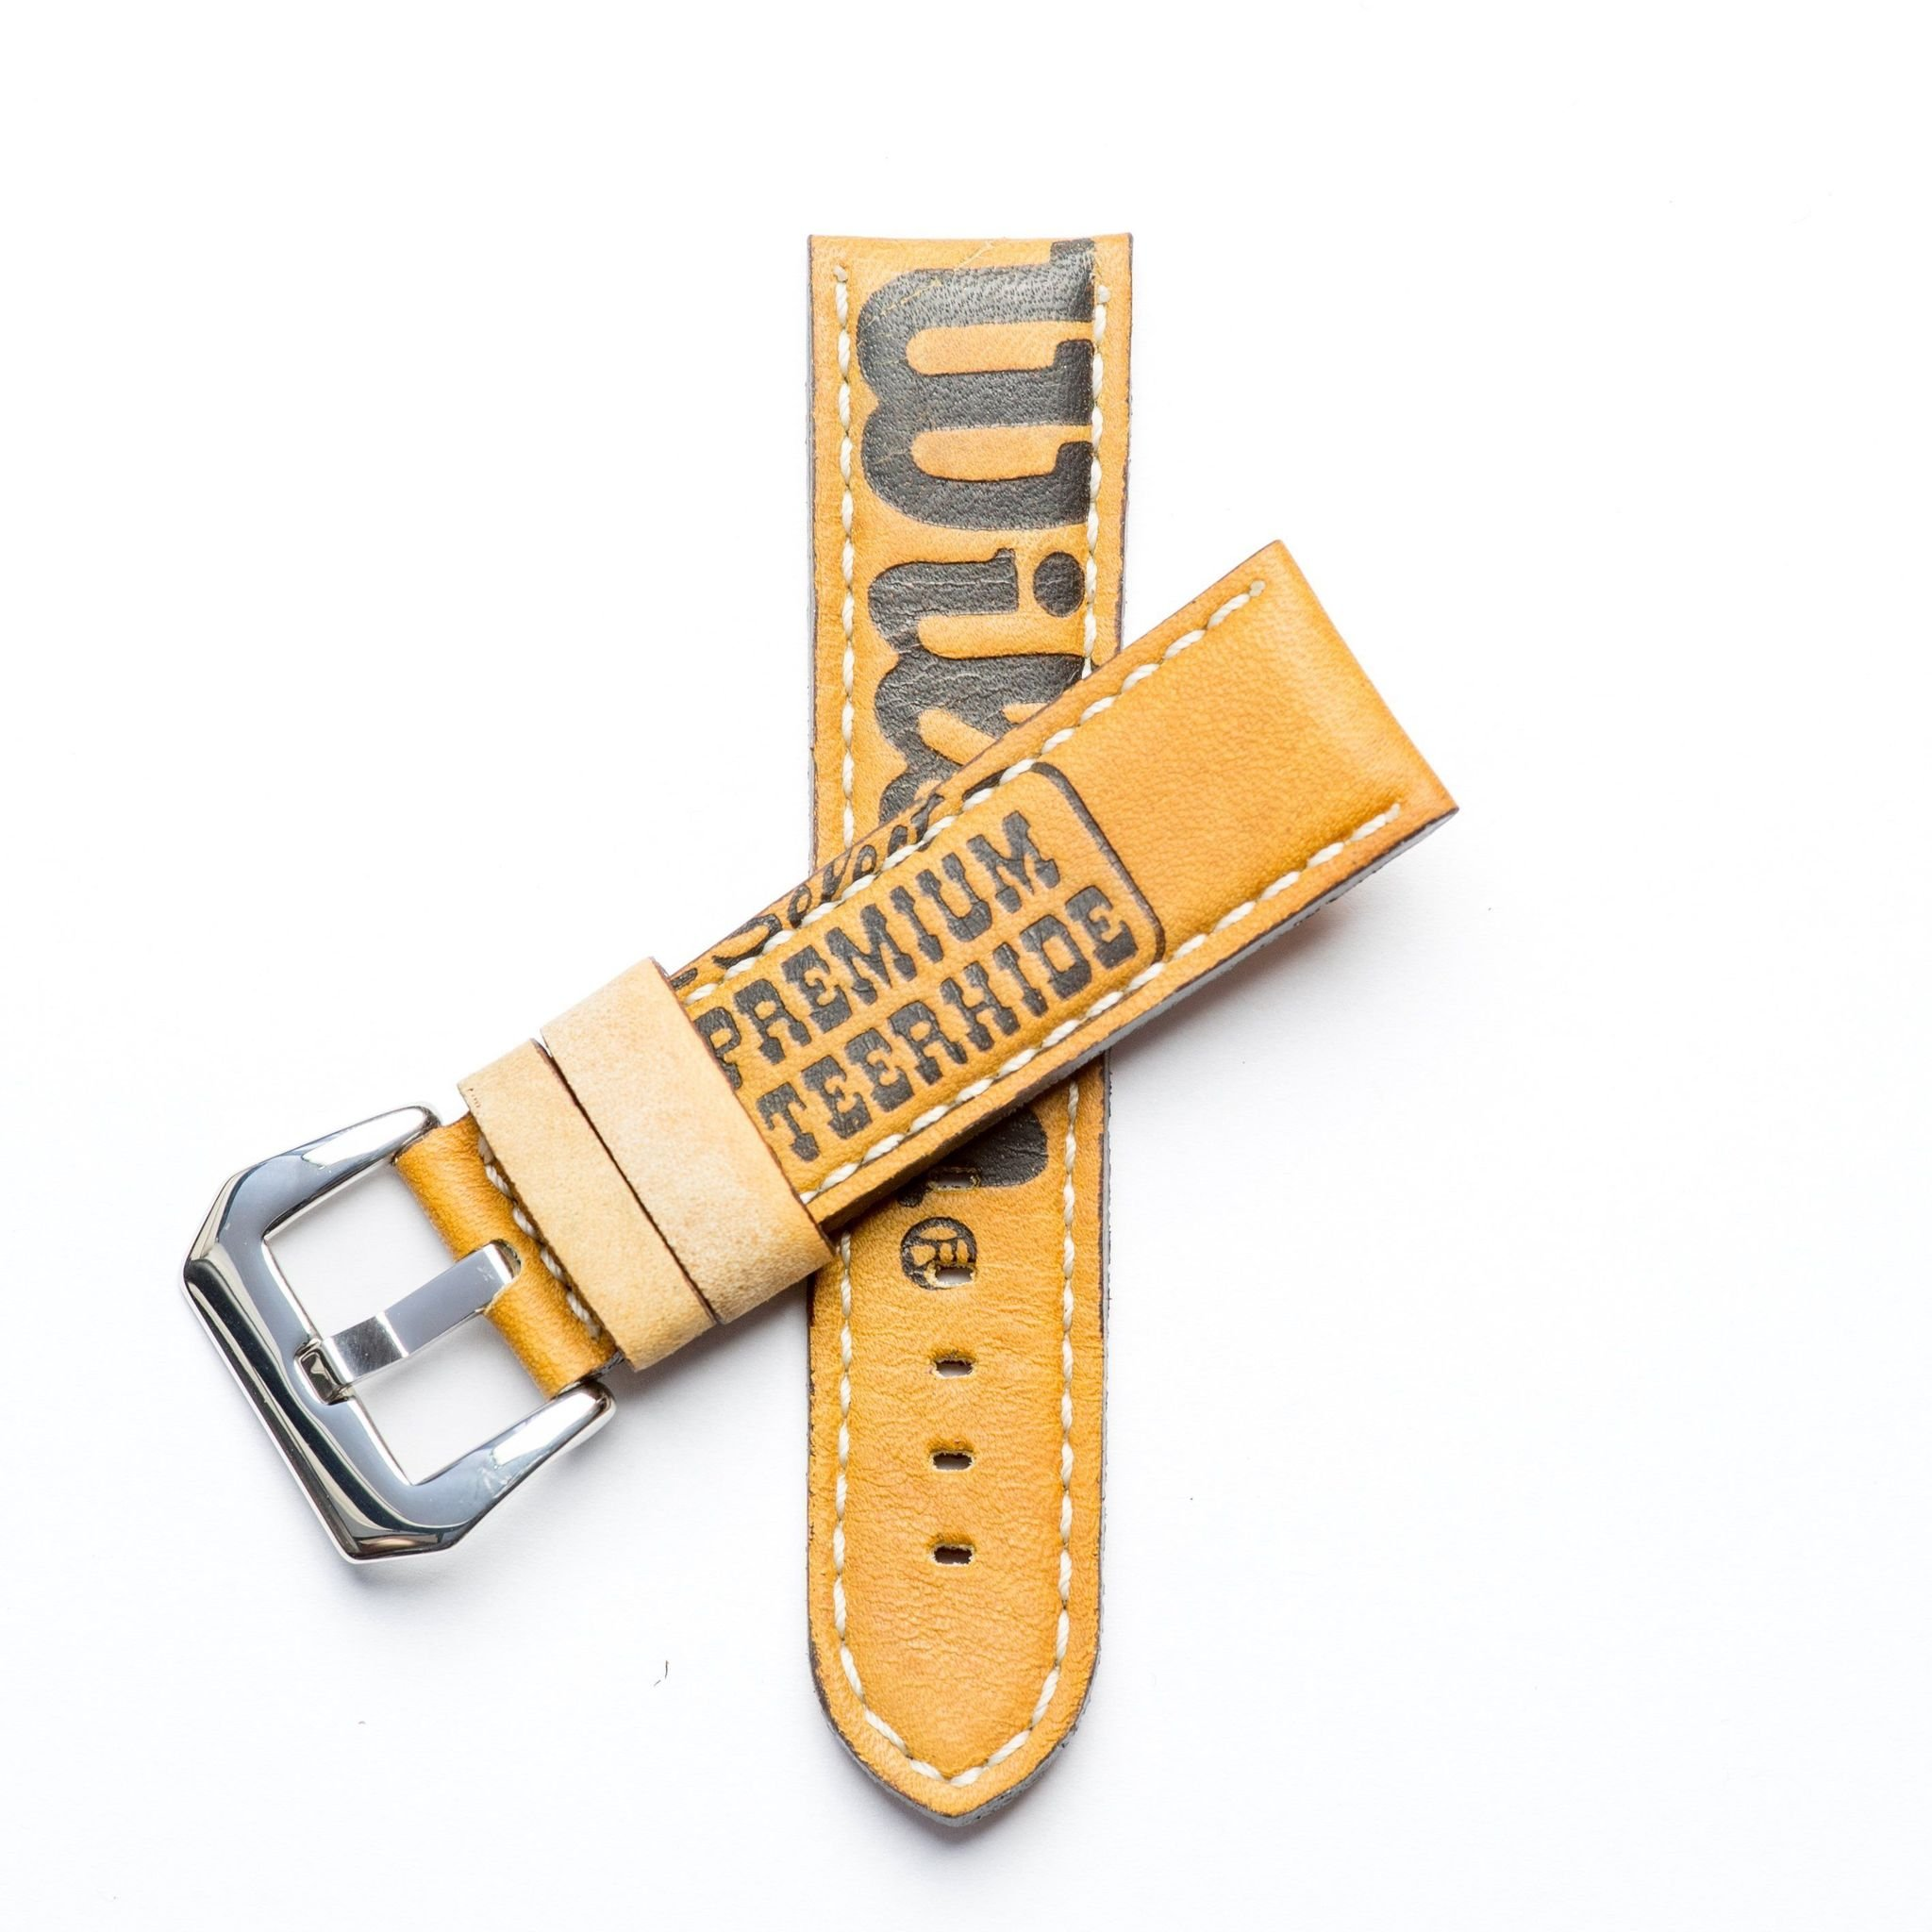 Baseball Leather Watch Strap - Limited Edition (24mm, Yellow Gold Polished) by Milano Straps (Image #1)